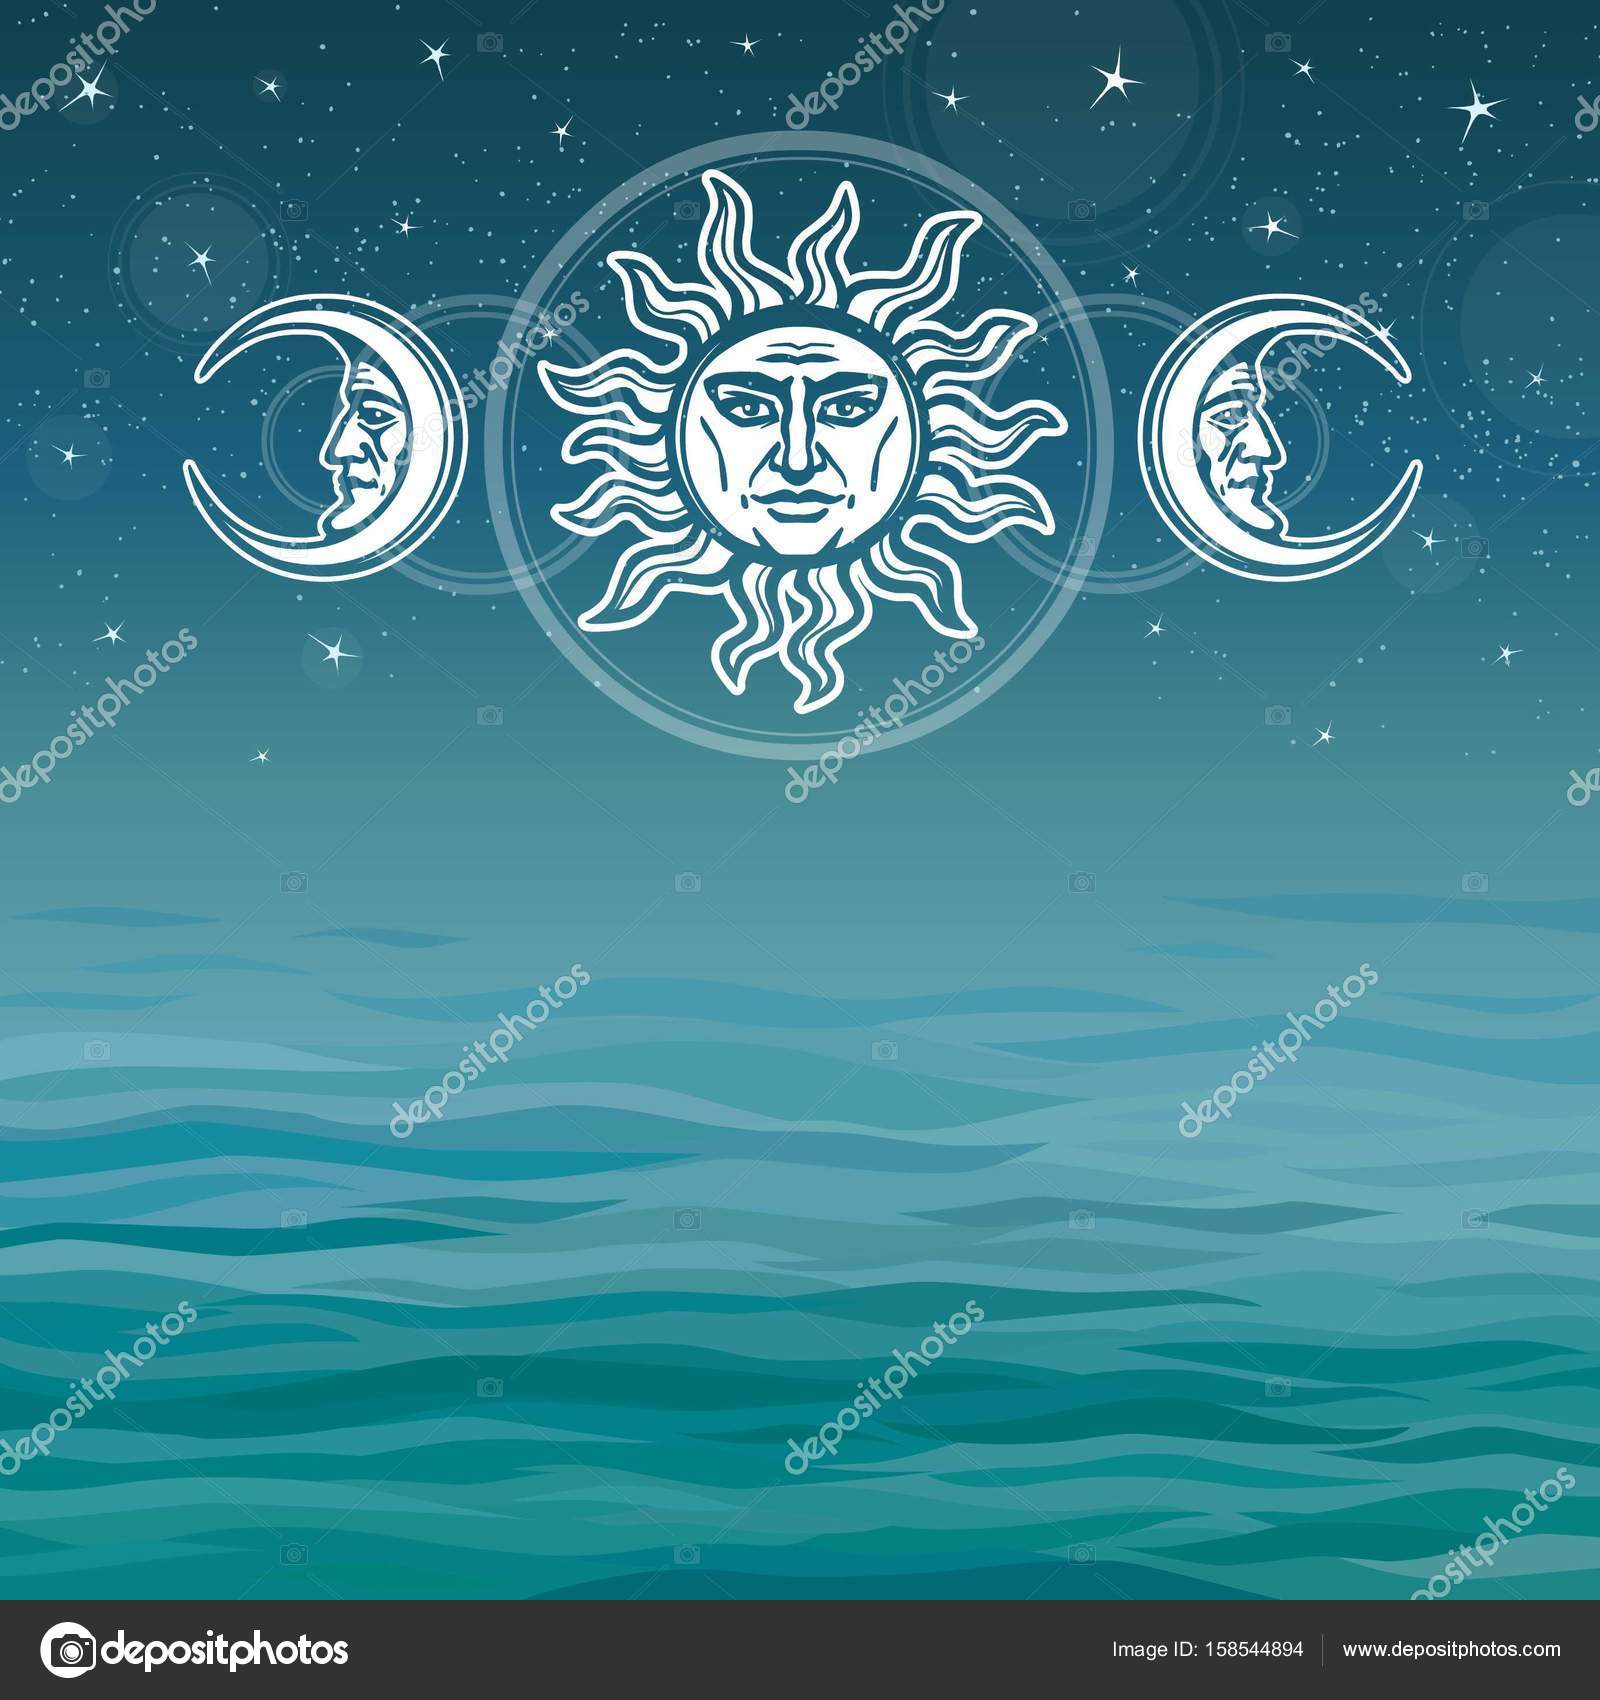 The image of the sun and the moon with human faces ancient symbols the image of the sun and the moon with human faces ancient symbols esoteric biocorpaavc Images